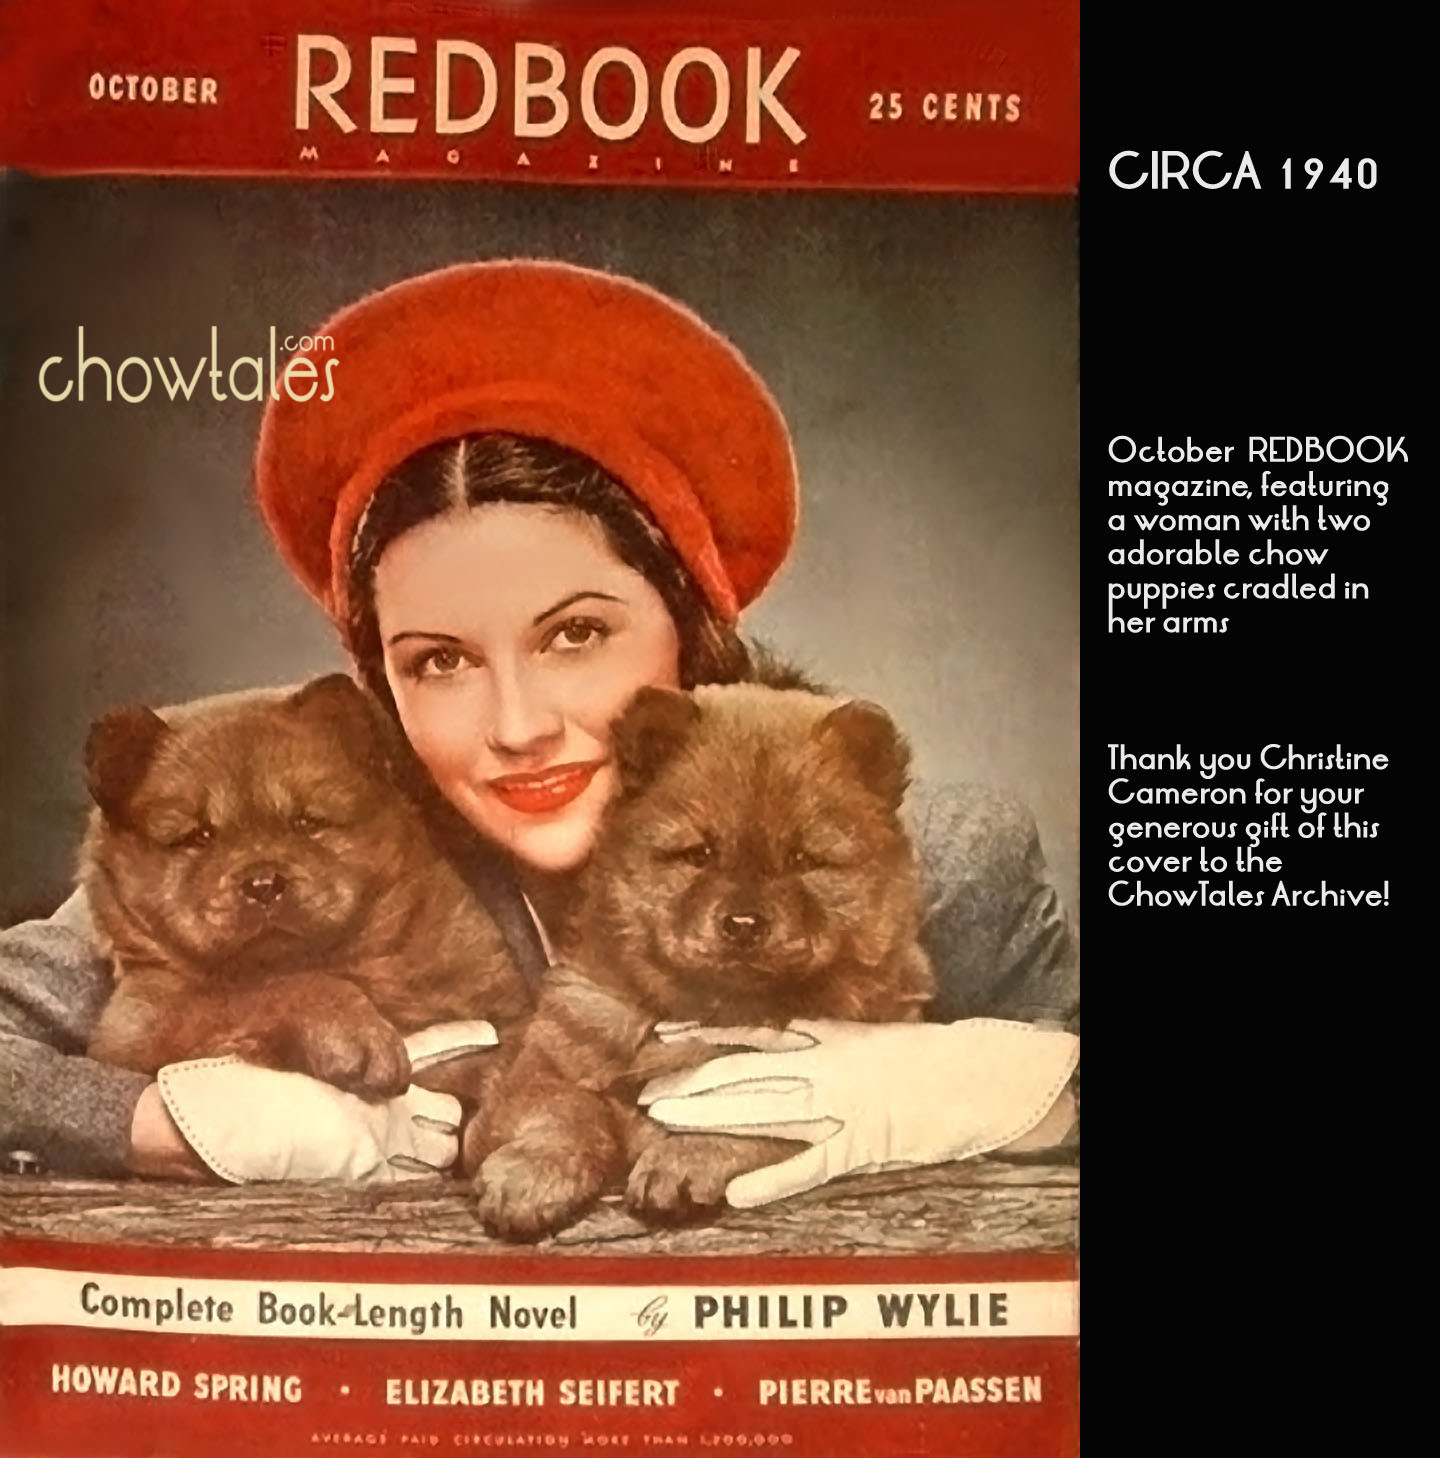 REDBOOK Magazine Chows collage 1940 - ChowTales